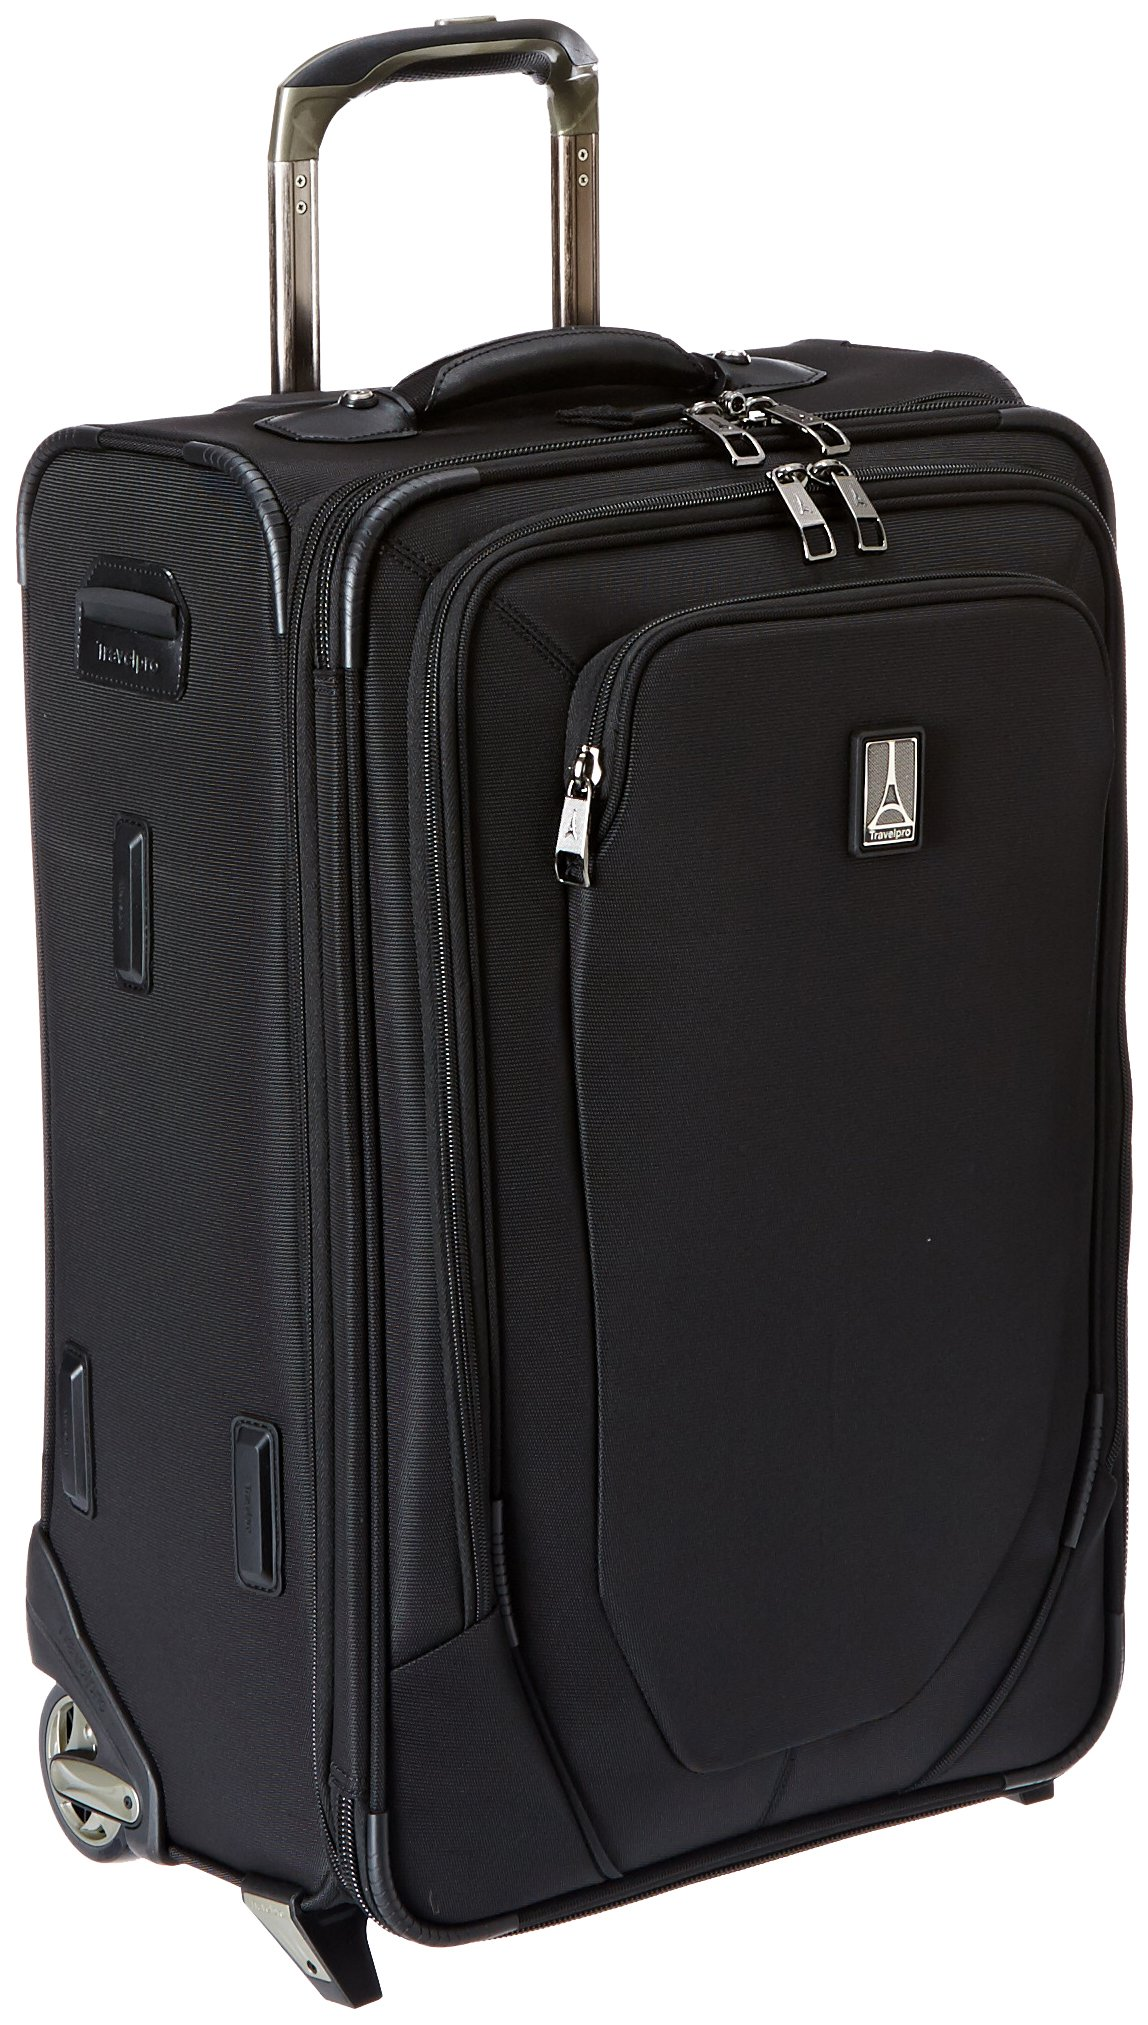 Travelpro Crew 10 22 Inch Expandable Rollaboard Suiter, Black, One Size